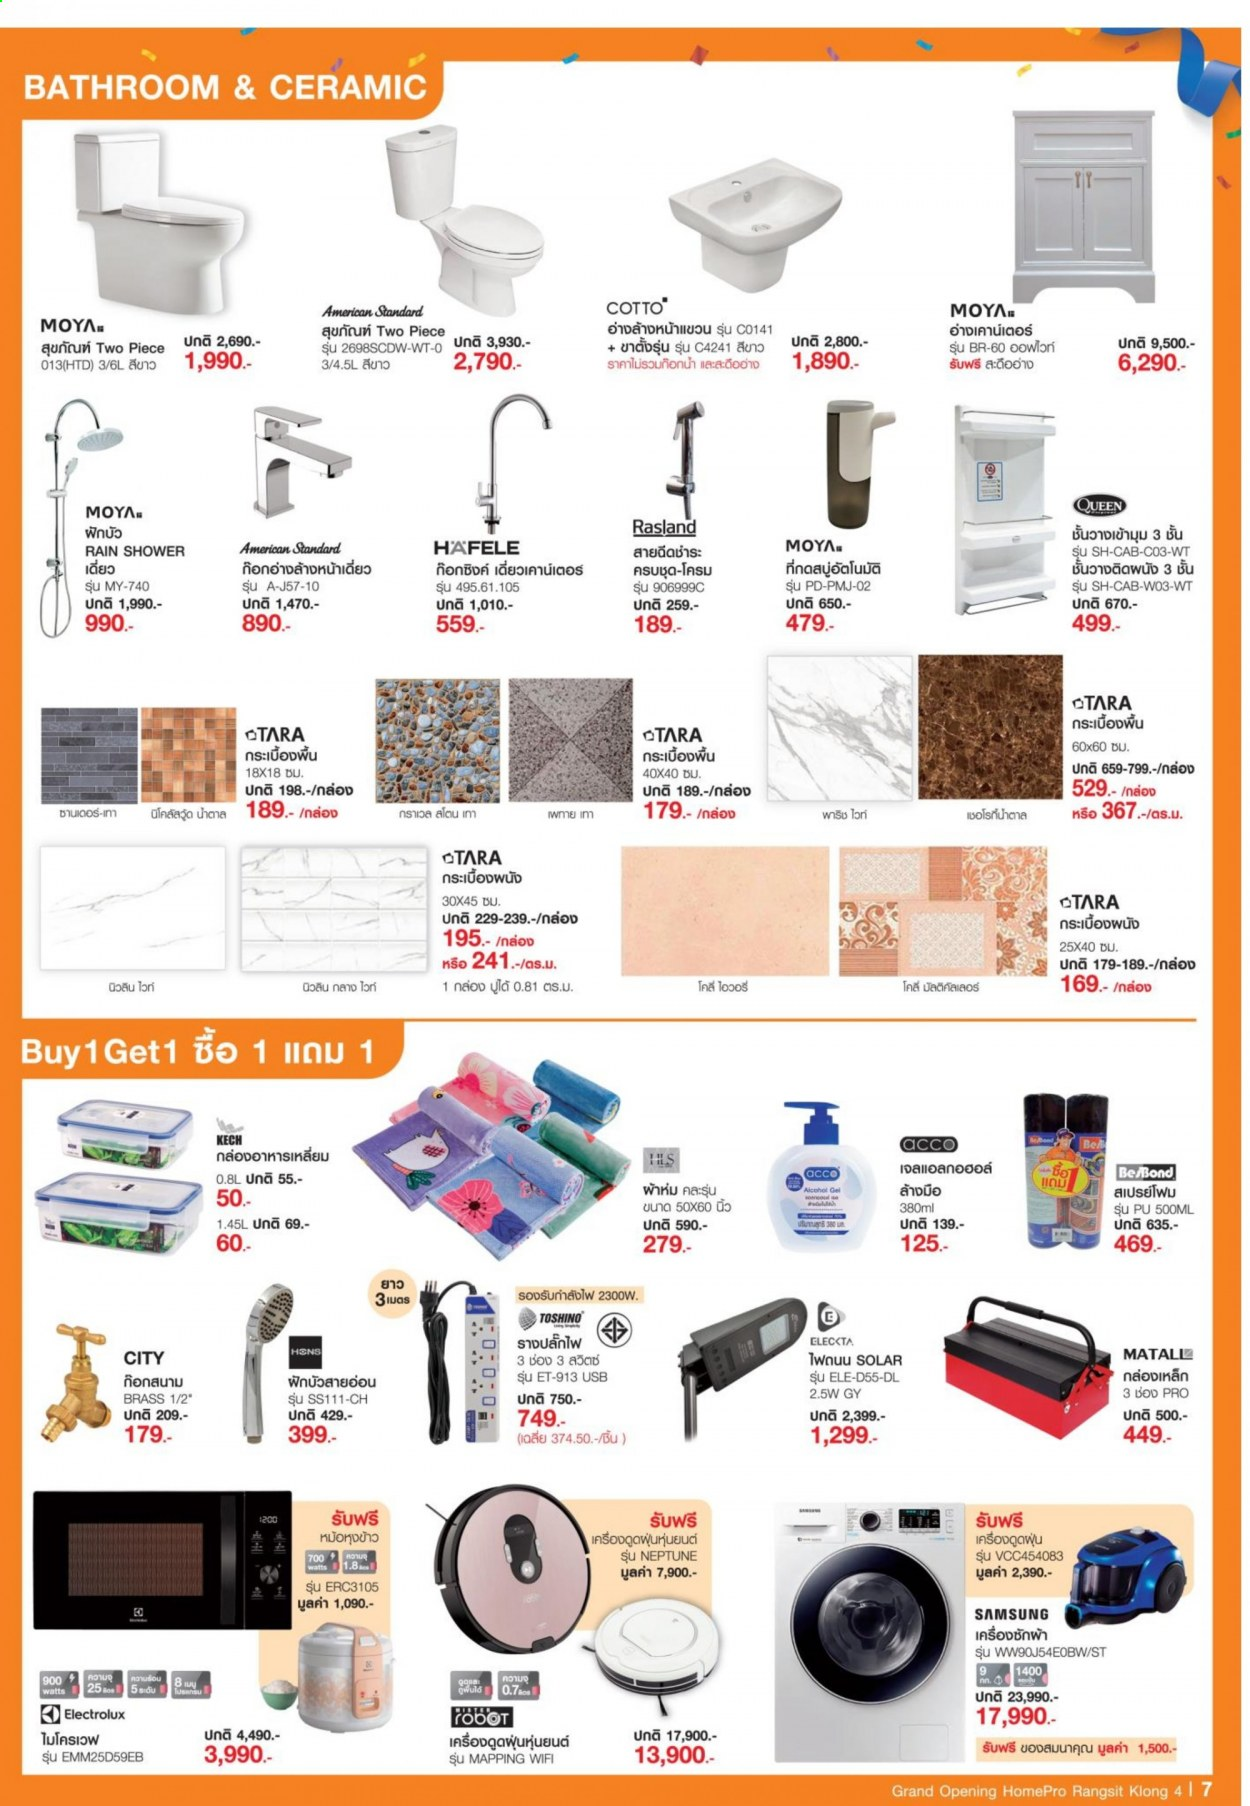 <retailer> - <MM/DD/YYYY - MM/DD/YYYY> - Sales products - ,<products from flyers>. Page 7